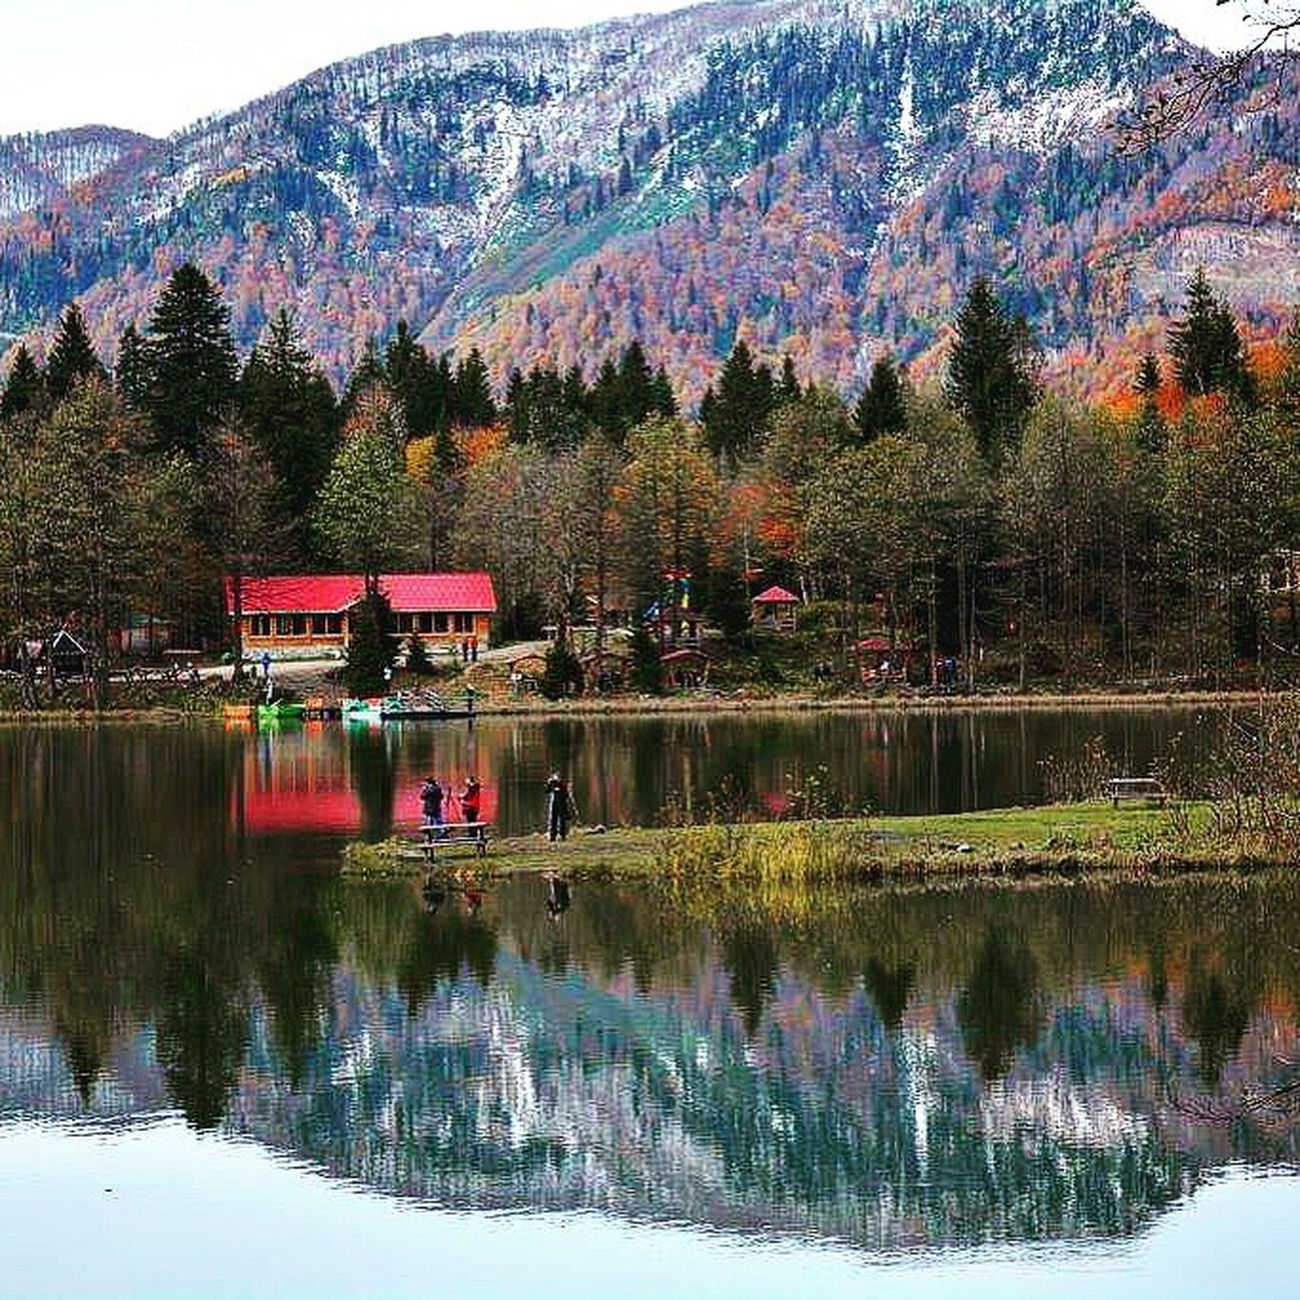 Karagölyaylası Borçka Reflection Water Nature Hello World Fresh Air A Good Day Travel Photography Traveler View Photographer Open Edit Myobjective Enjoying Life Amaizing Traveling Lake View Autumn Autumn🍁🍁🍁